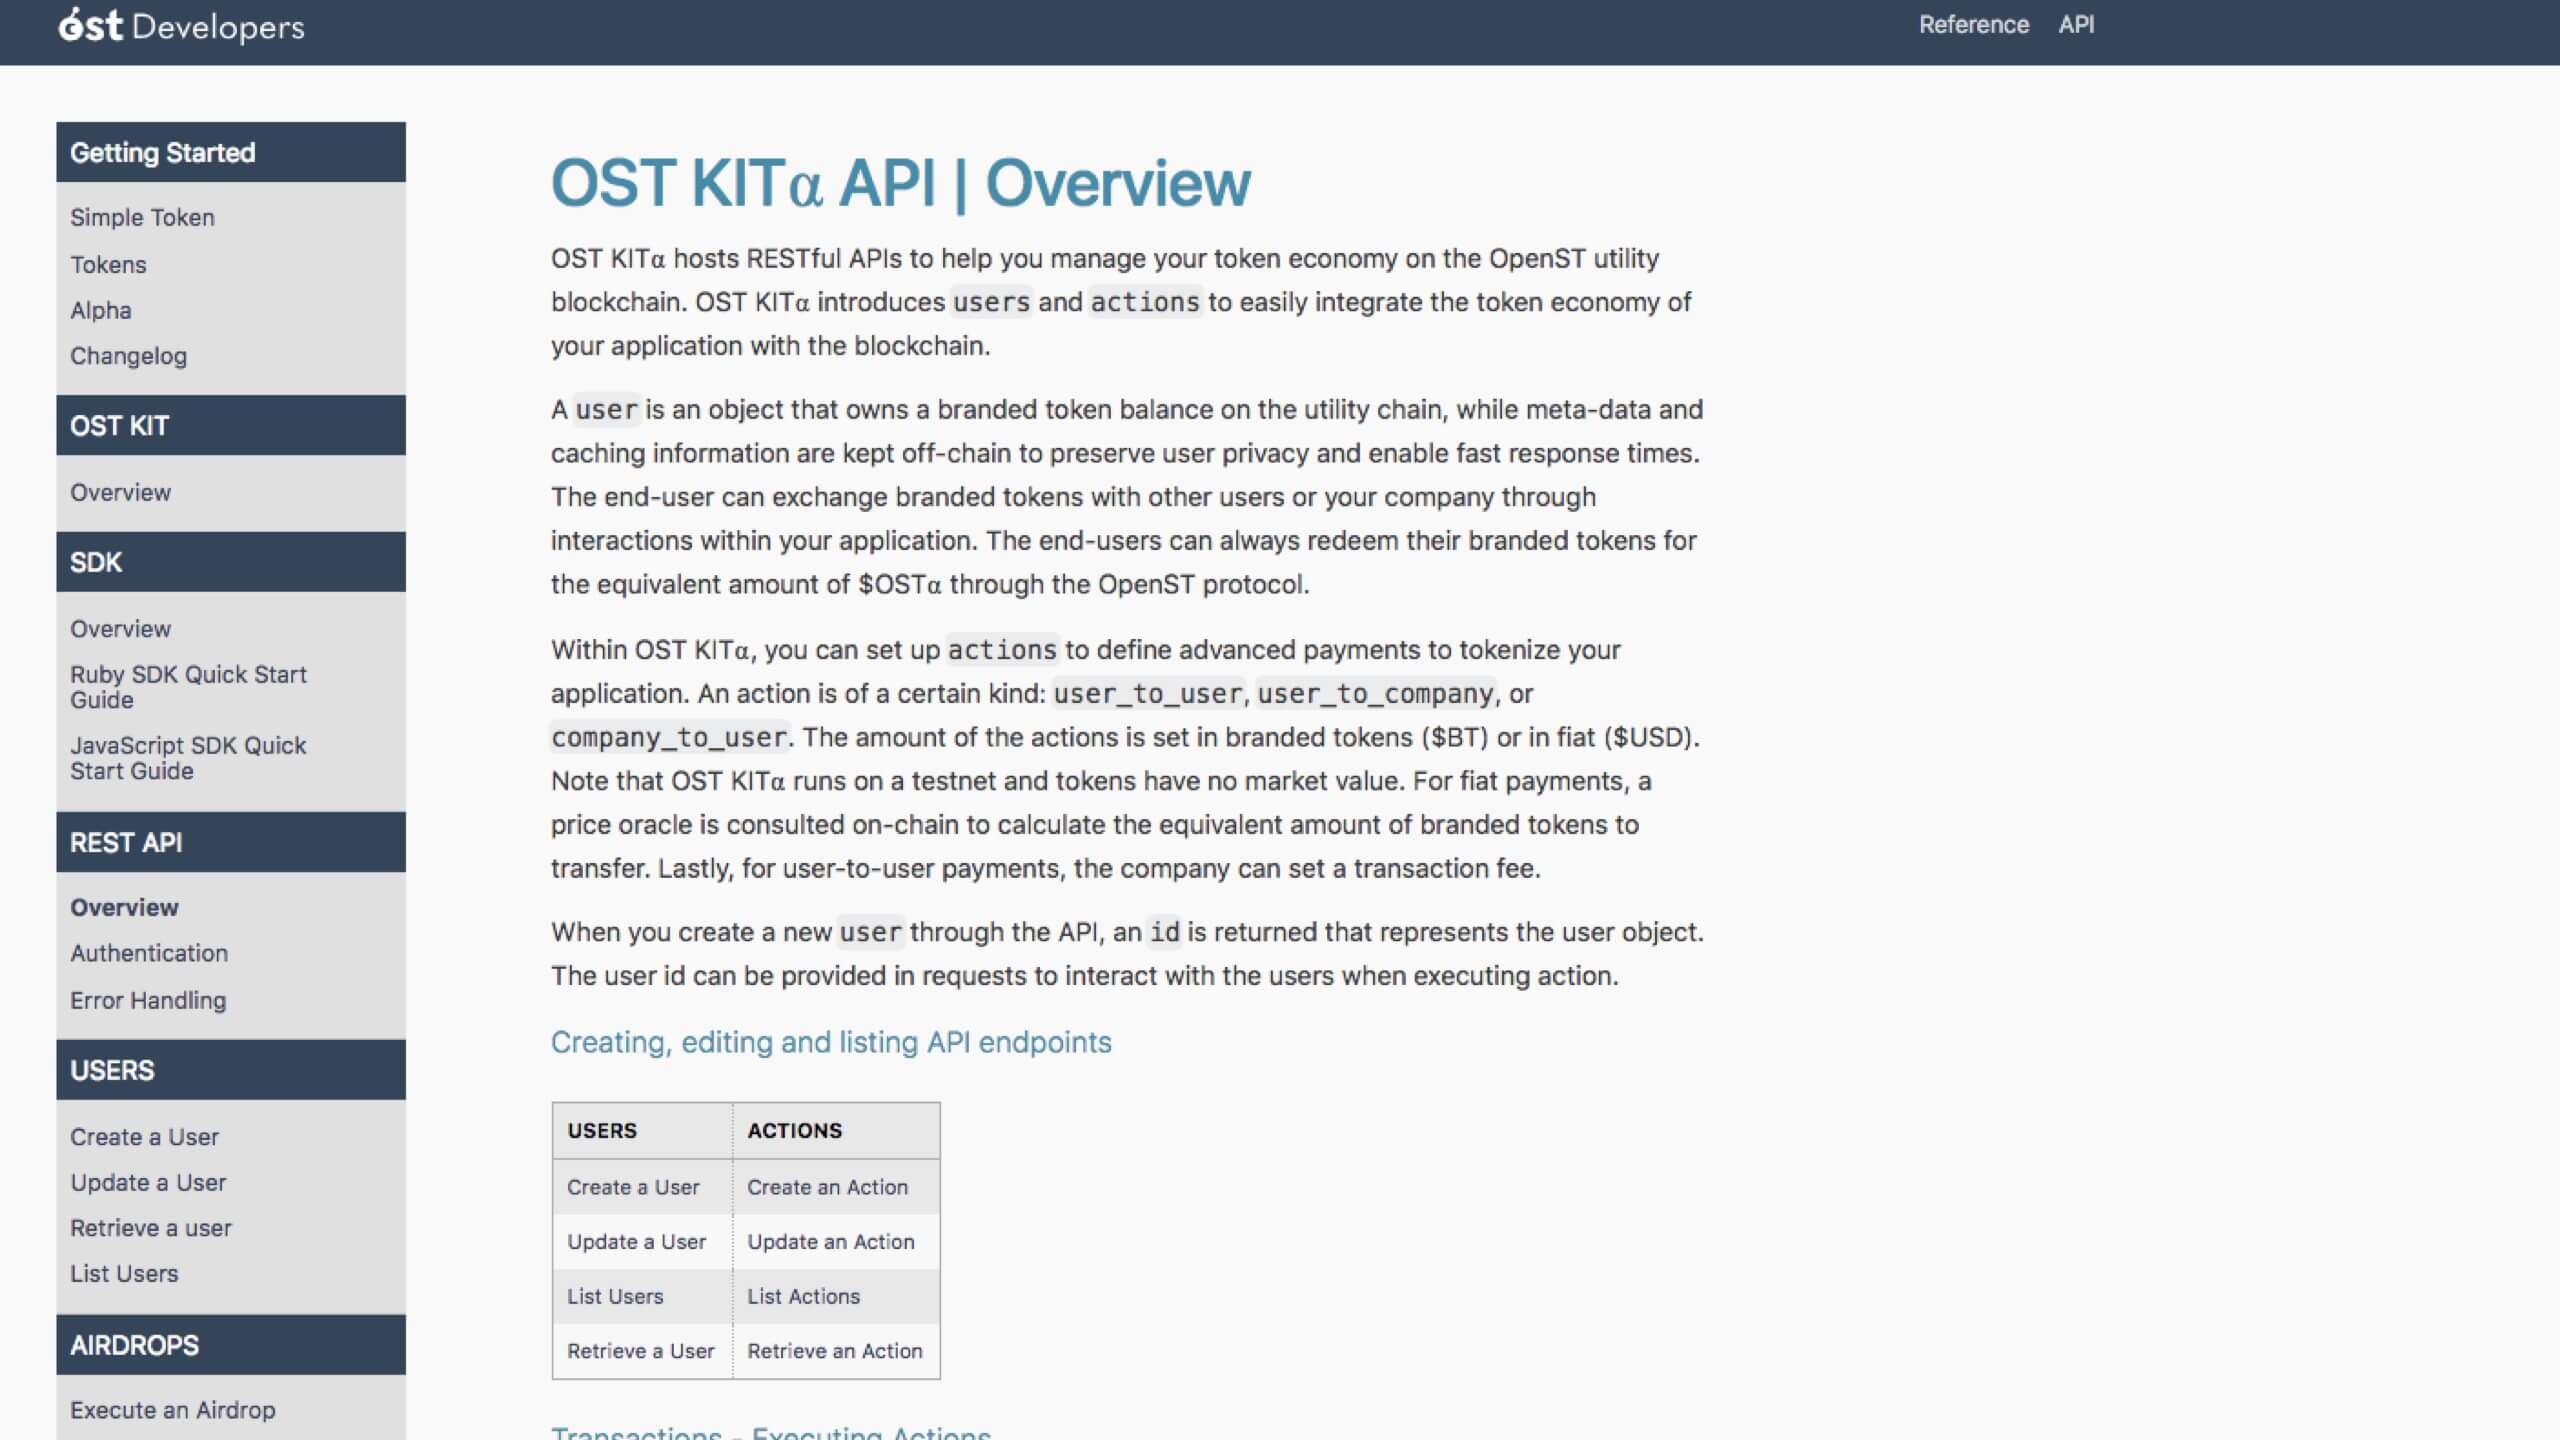 Launched: OST API v1.0